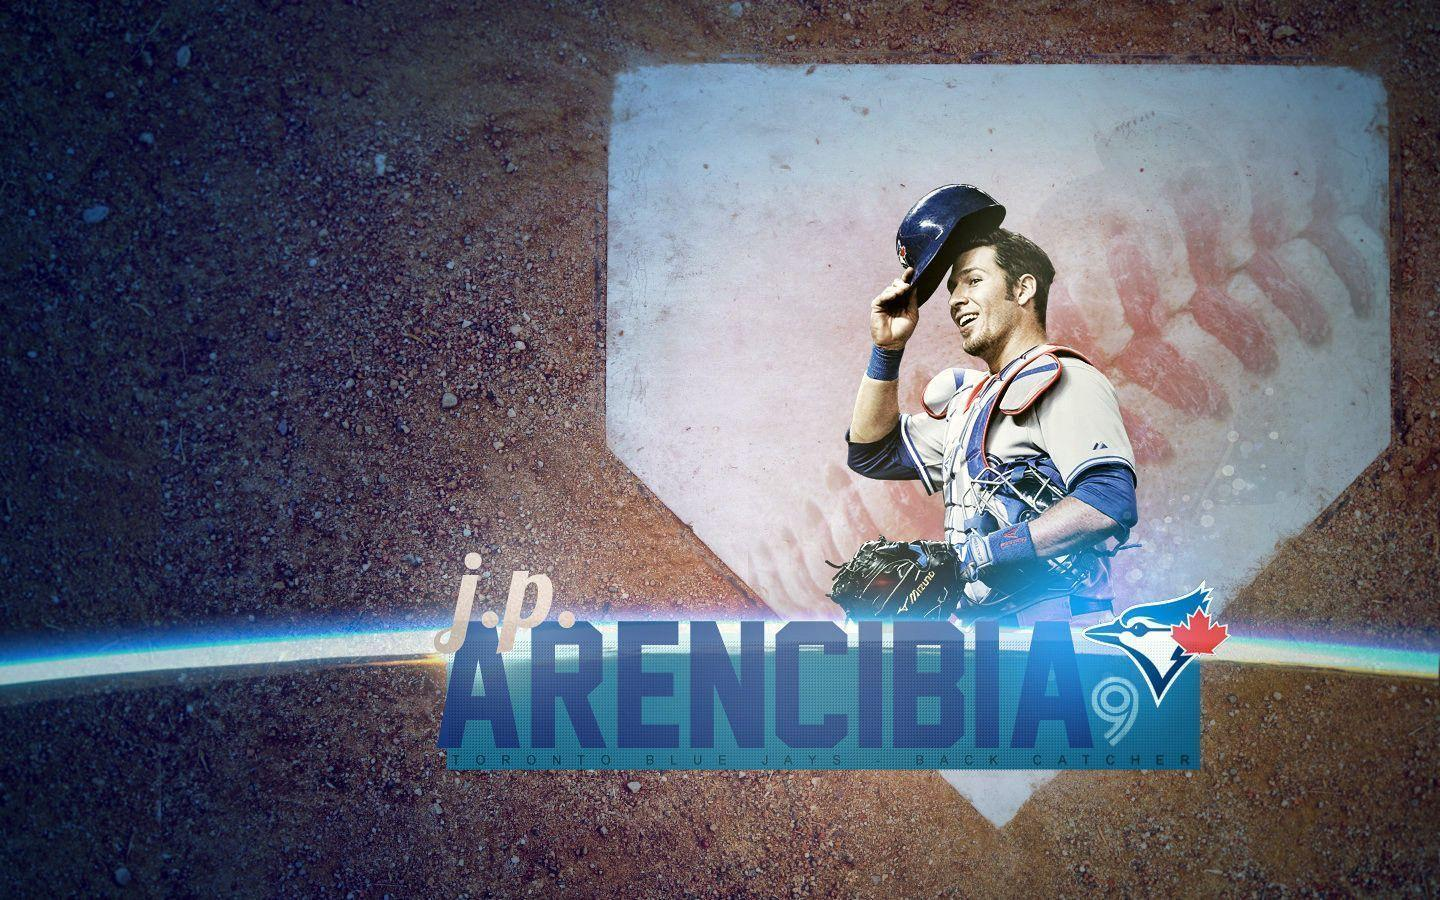 J.P. Arencibia Toronto Blue Jays 1440x900 wallpaper